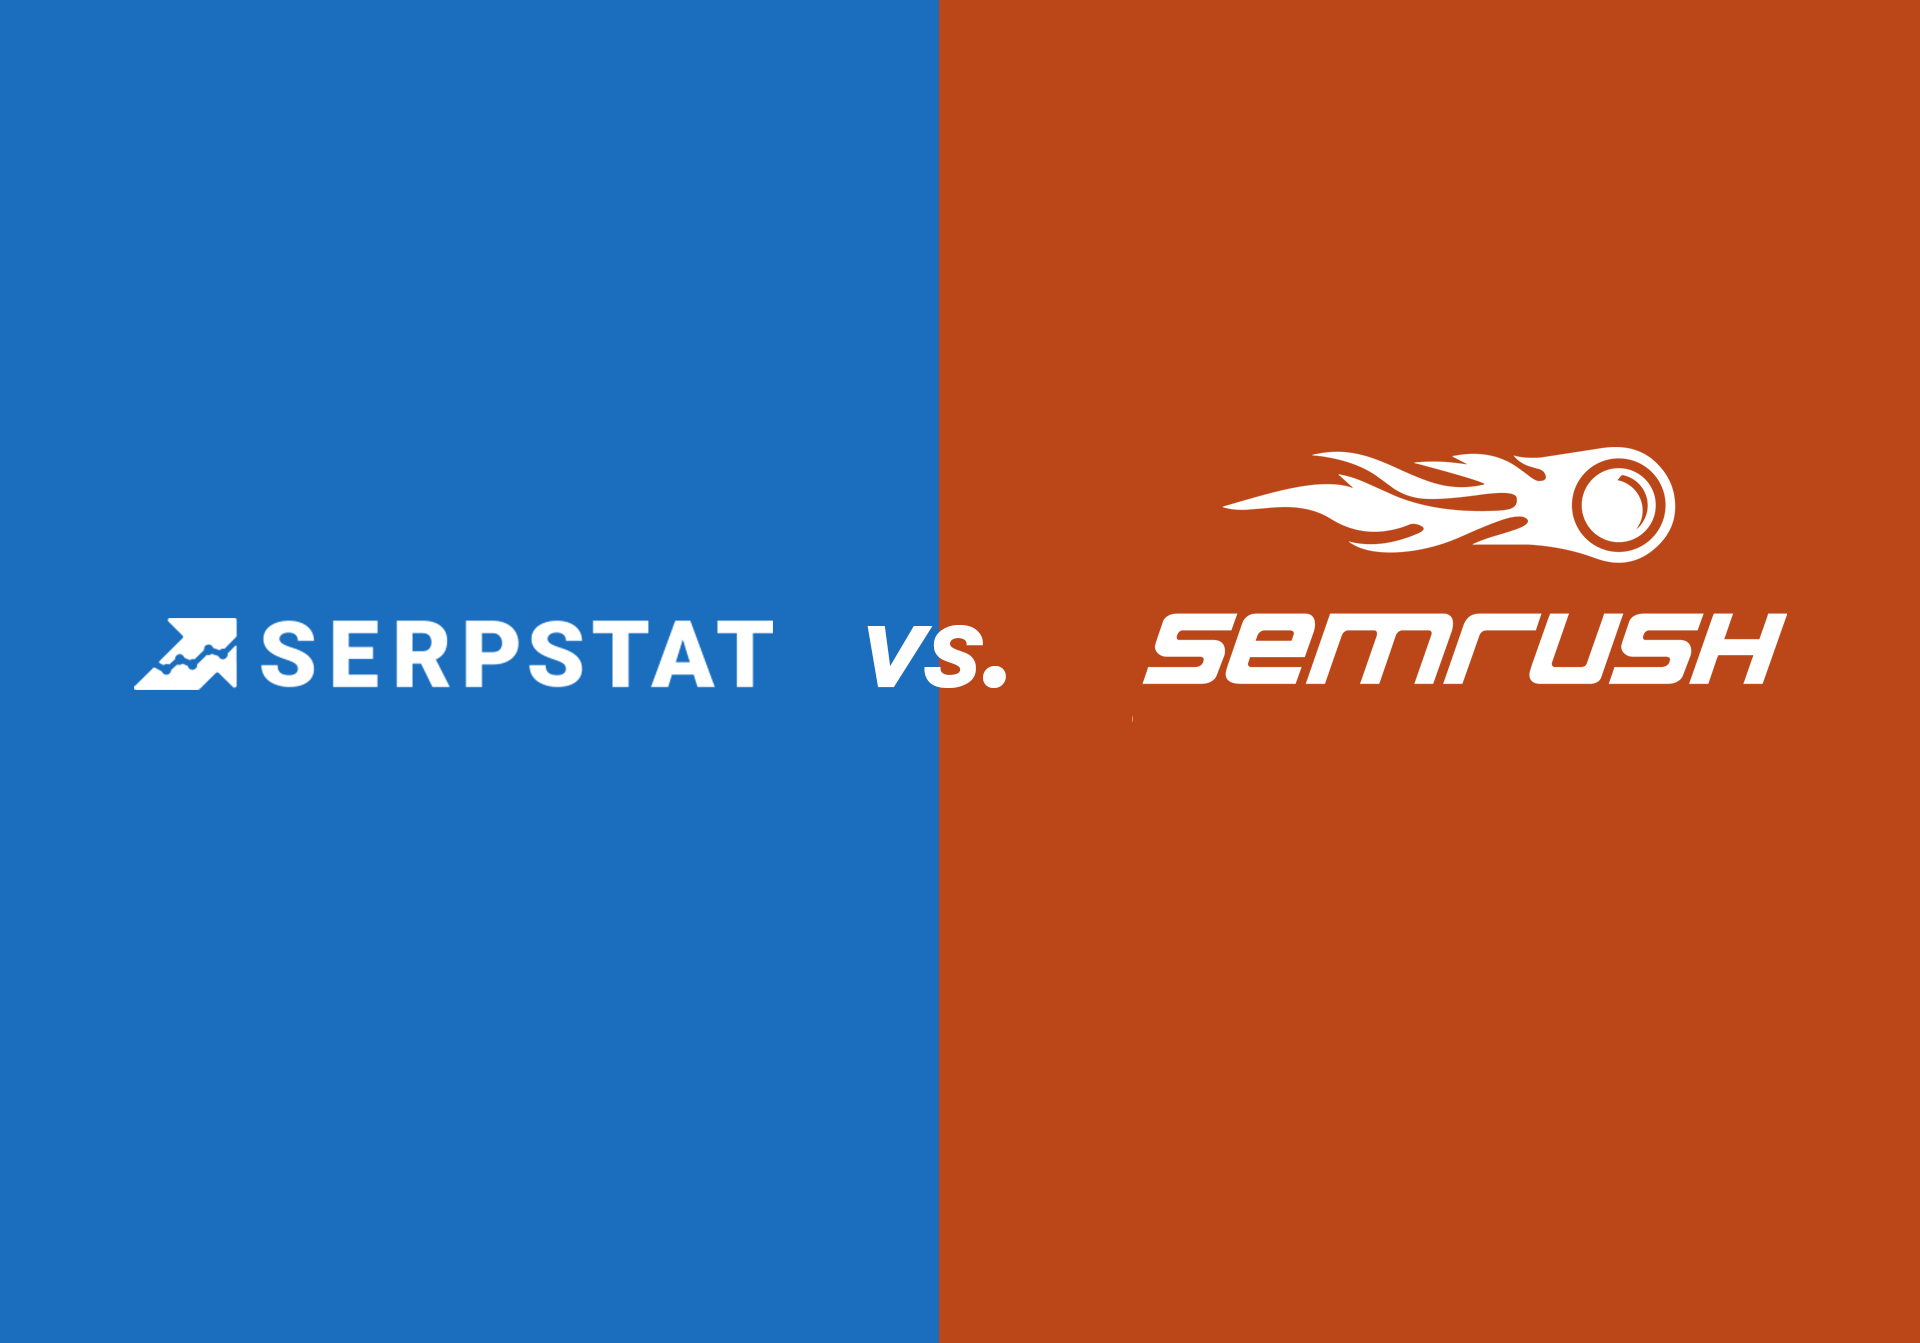 Best Prices For Seo Software Semrush